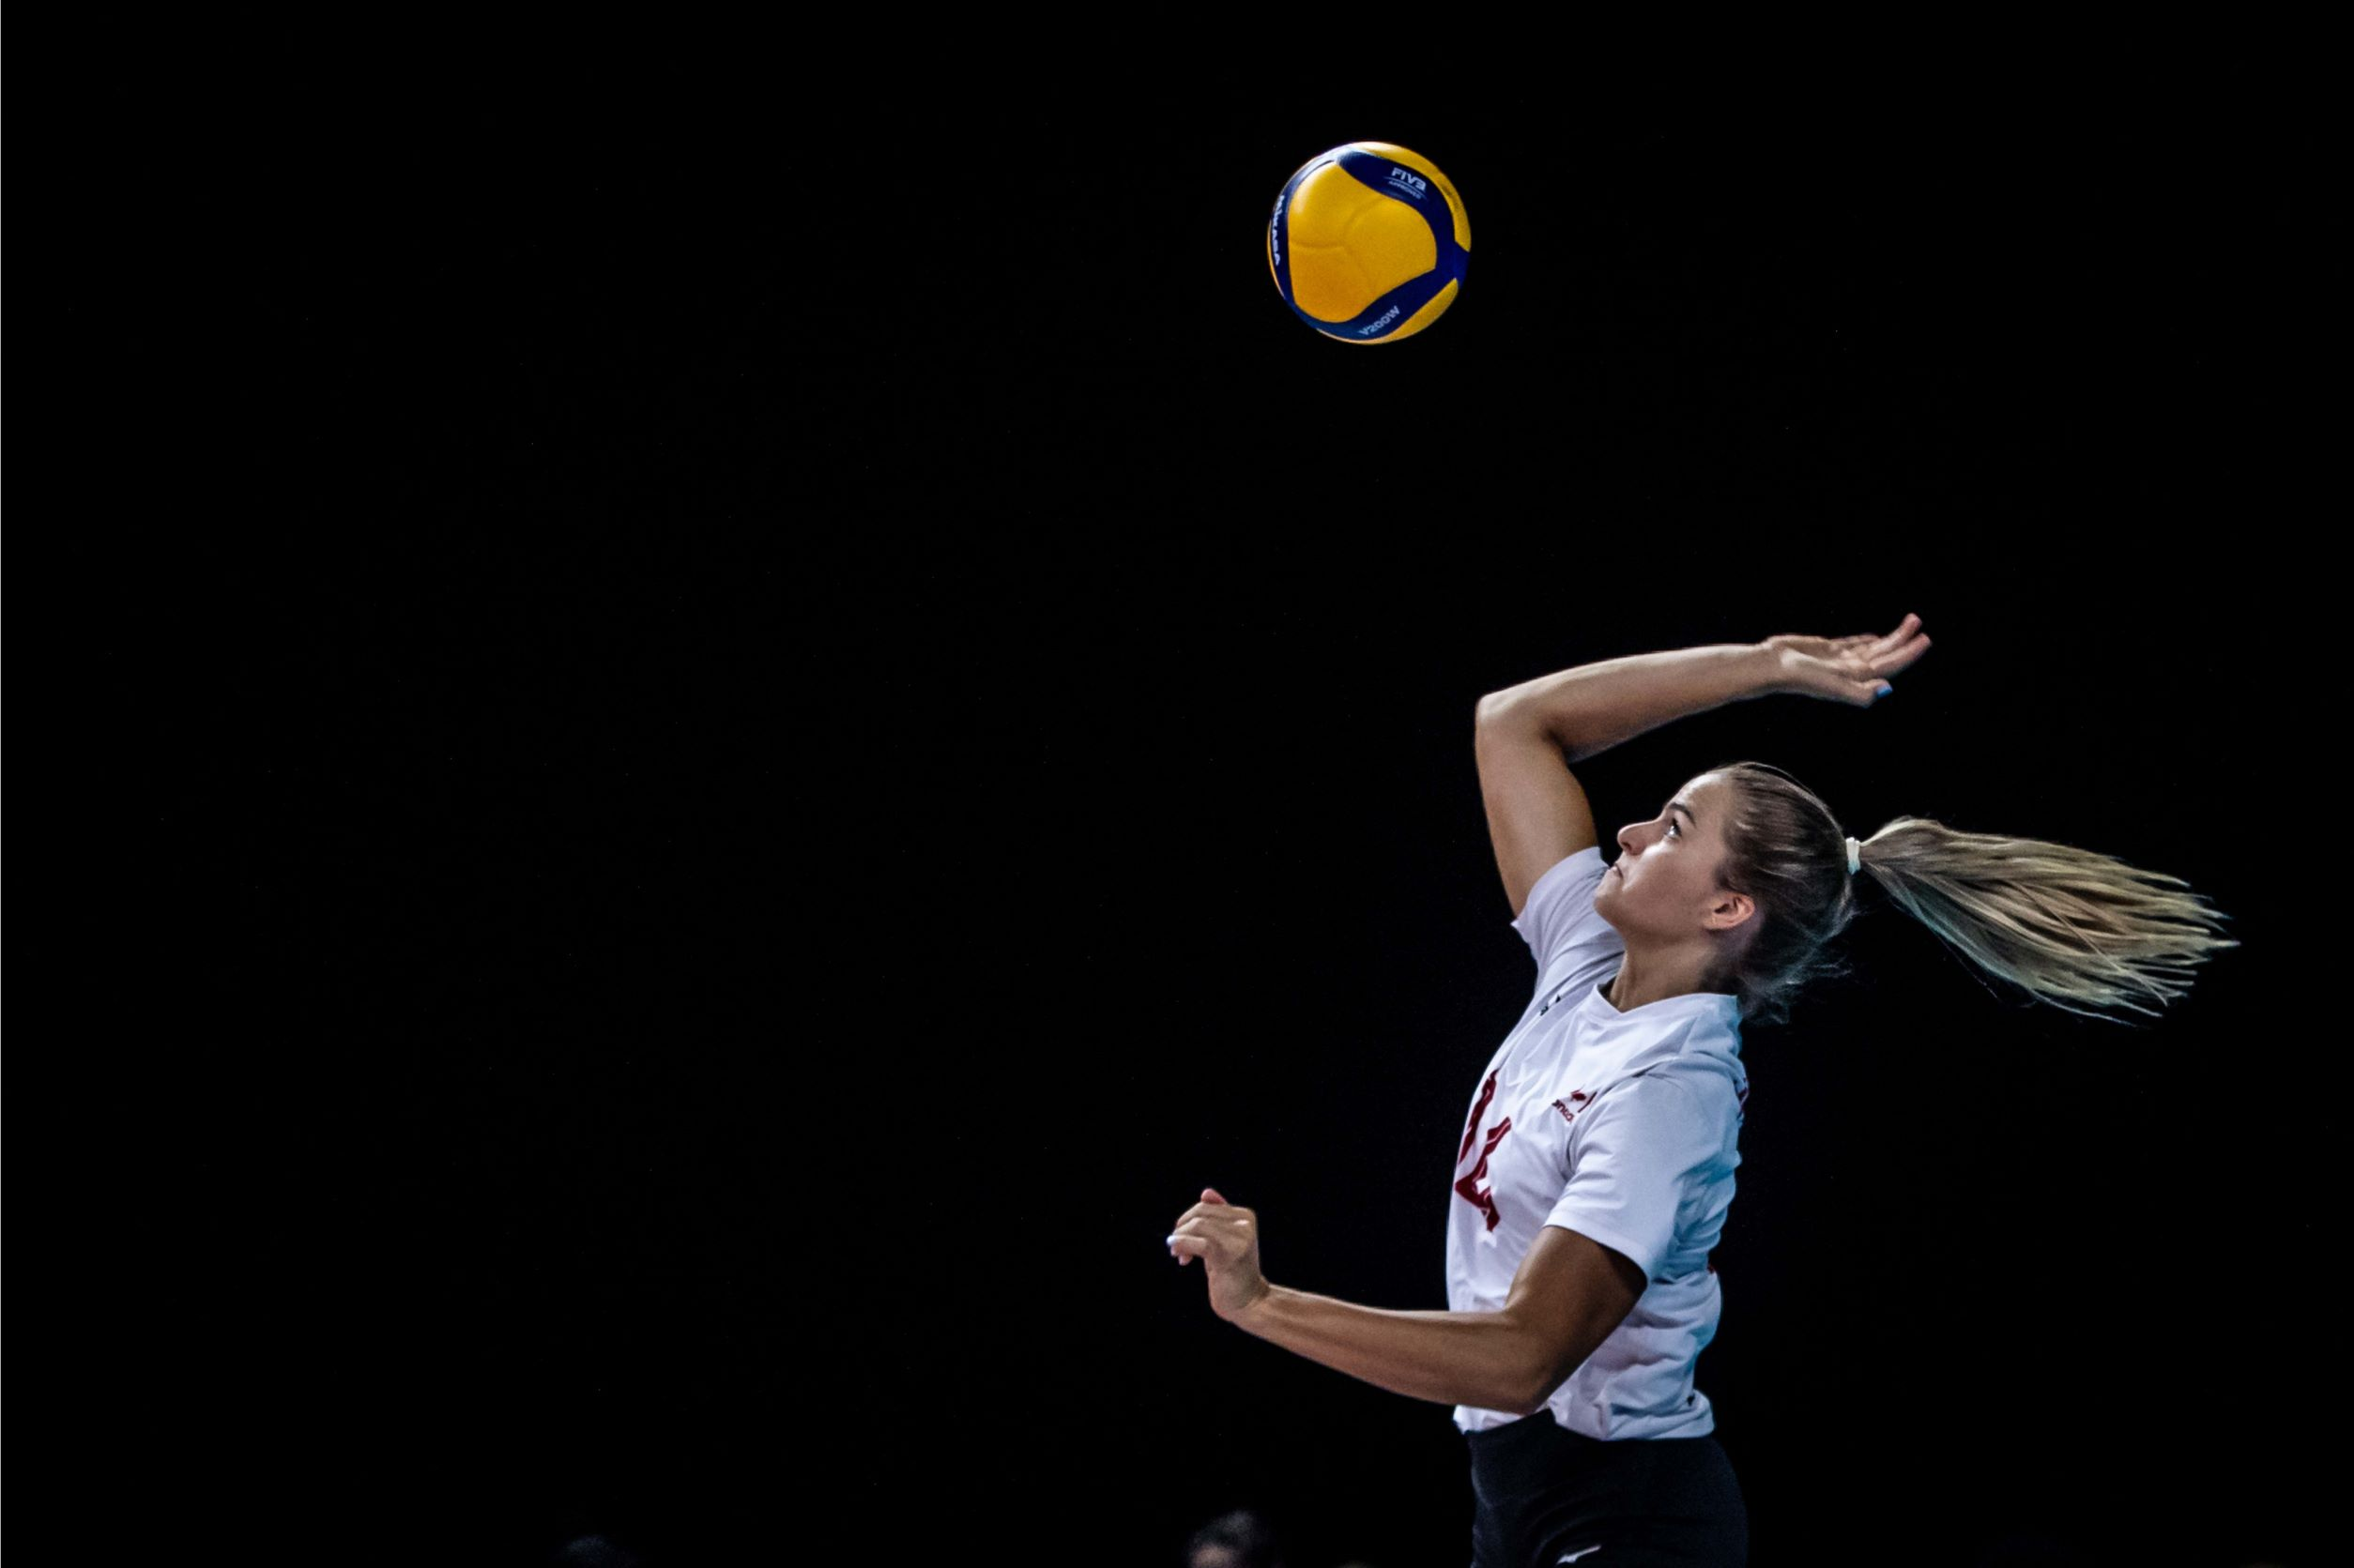 Side view of a female Volleyball Canada athlete jumping into the air to serve the ball, action shot against a black background.